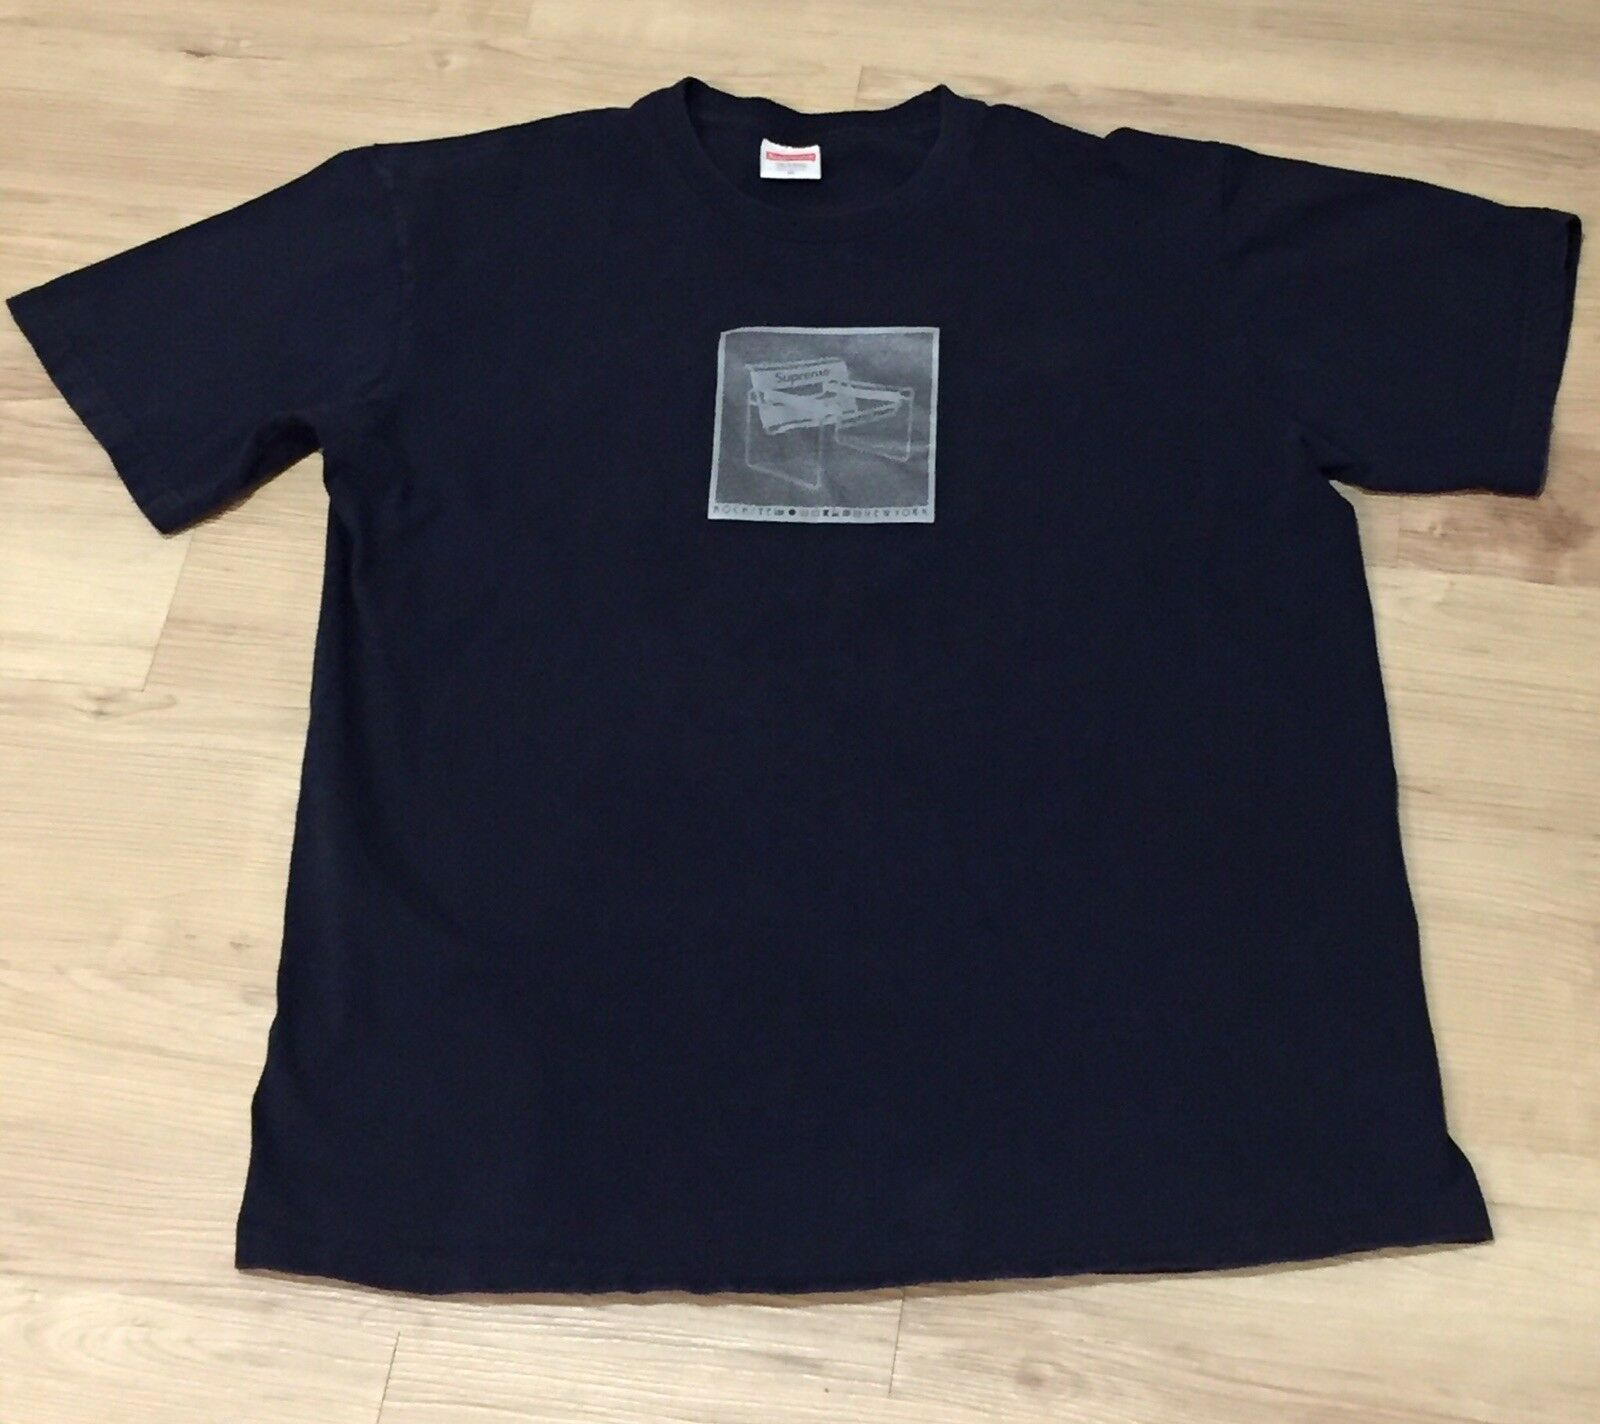 Supreme Chair Tee Navy Blau Größe M Medium SS17 Worn